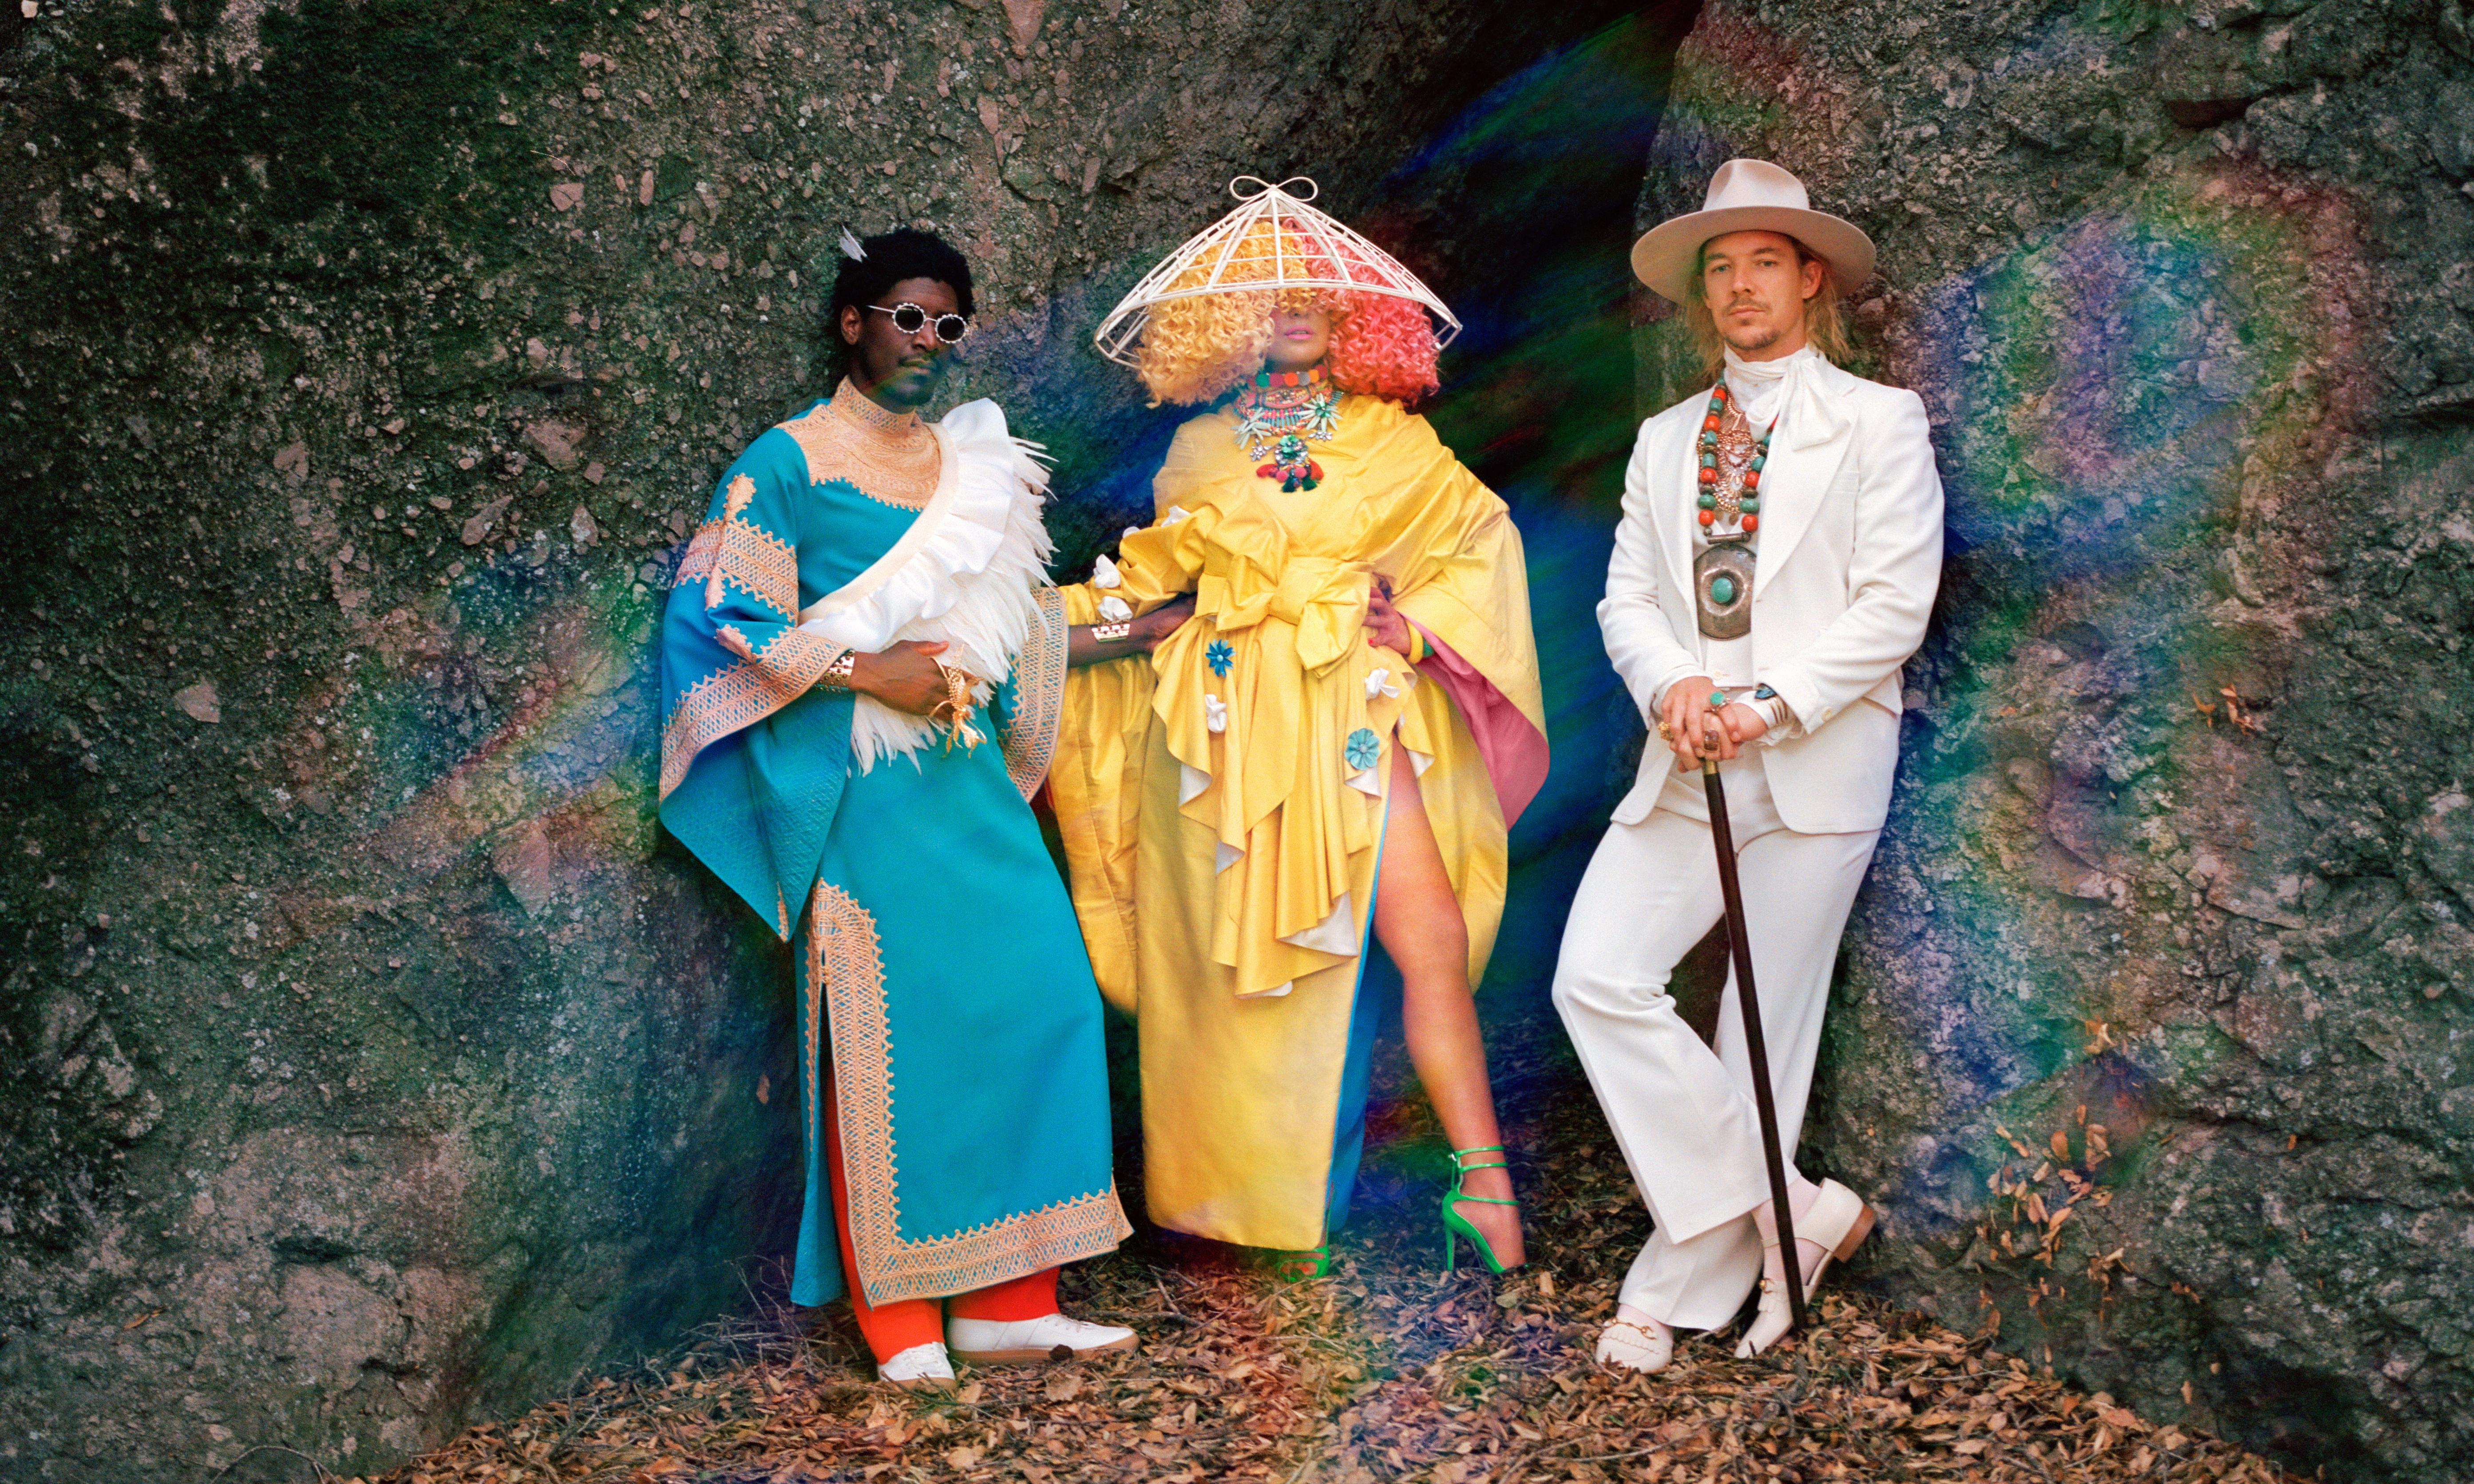 Labrinth, Sia and Diplo Present… LSD review – streaming supergroup underwhelm